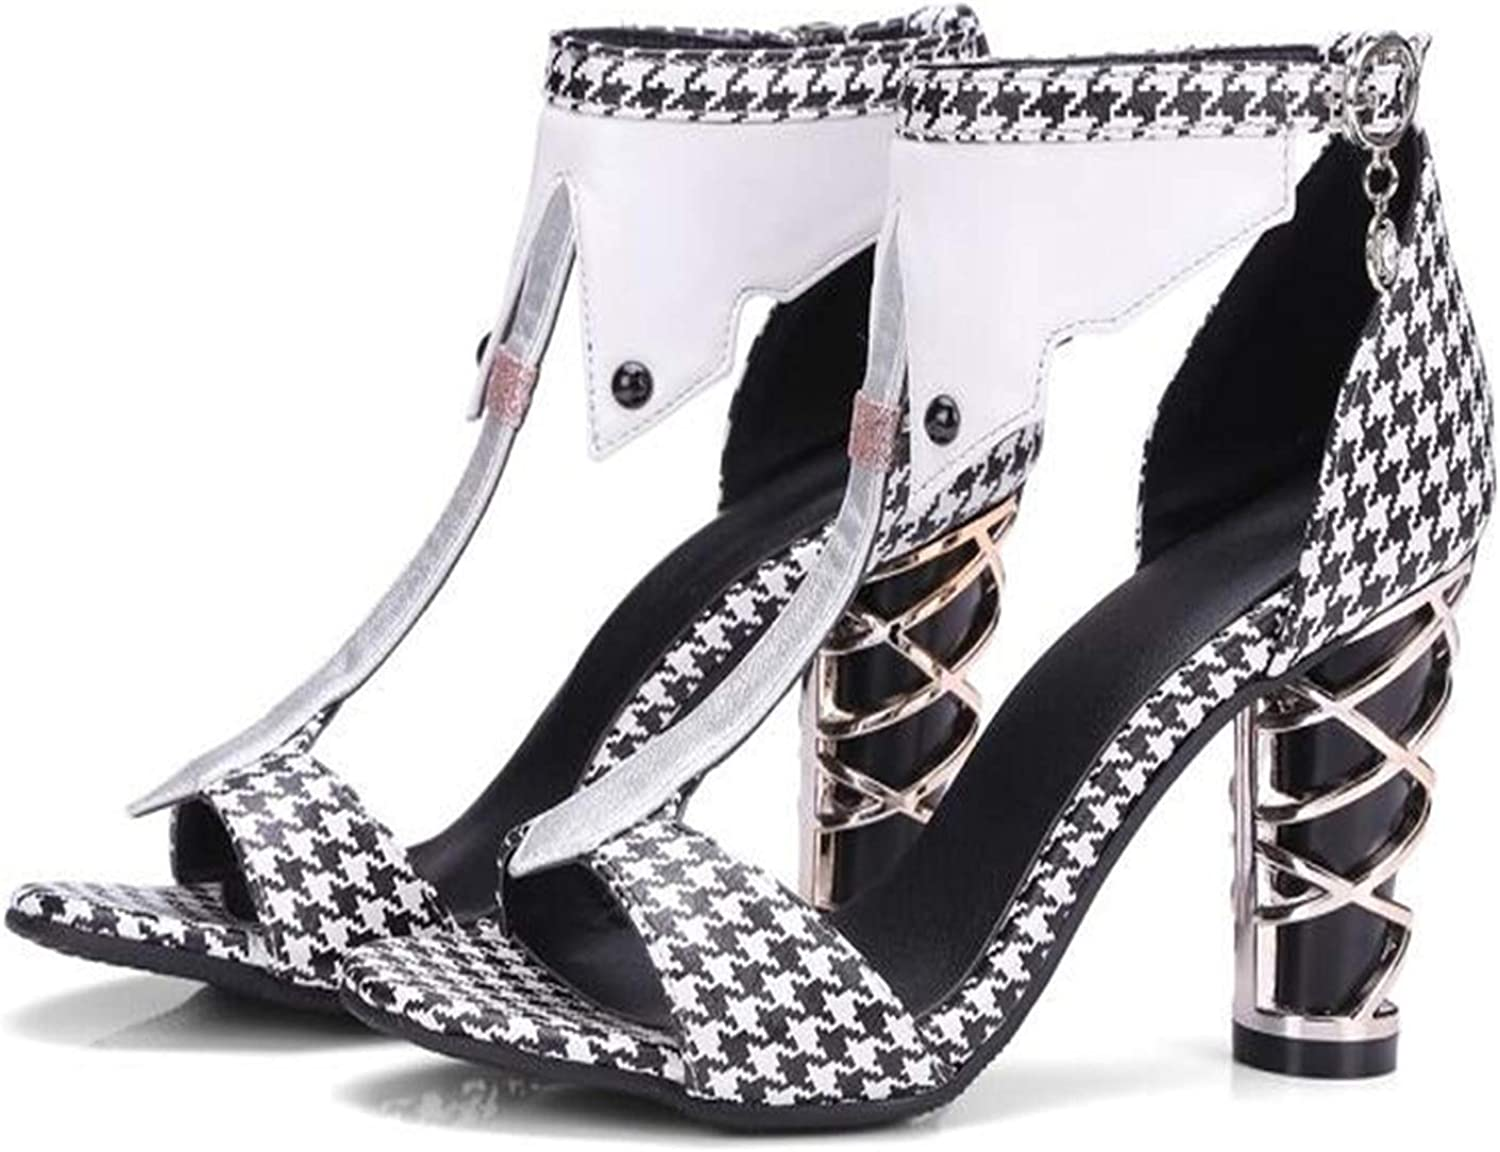 Sandals Plaid Black and White Metal and high Heel Large Size Women,